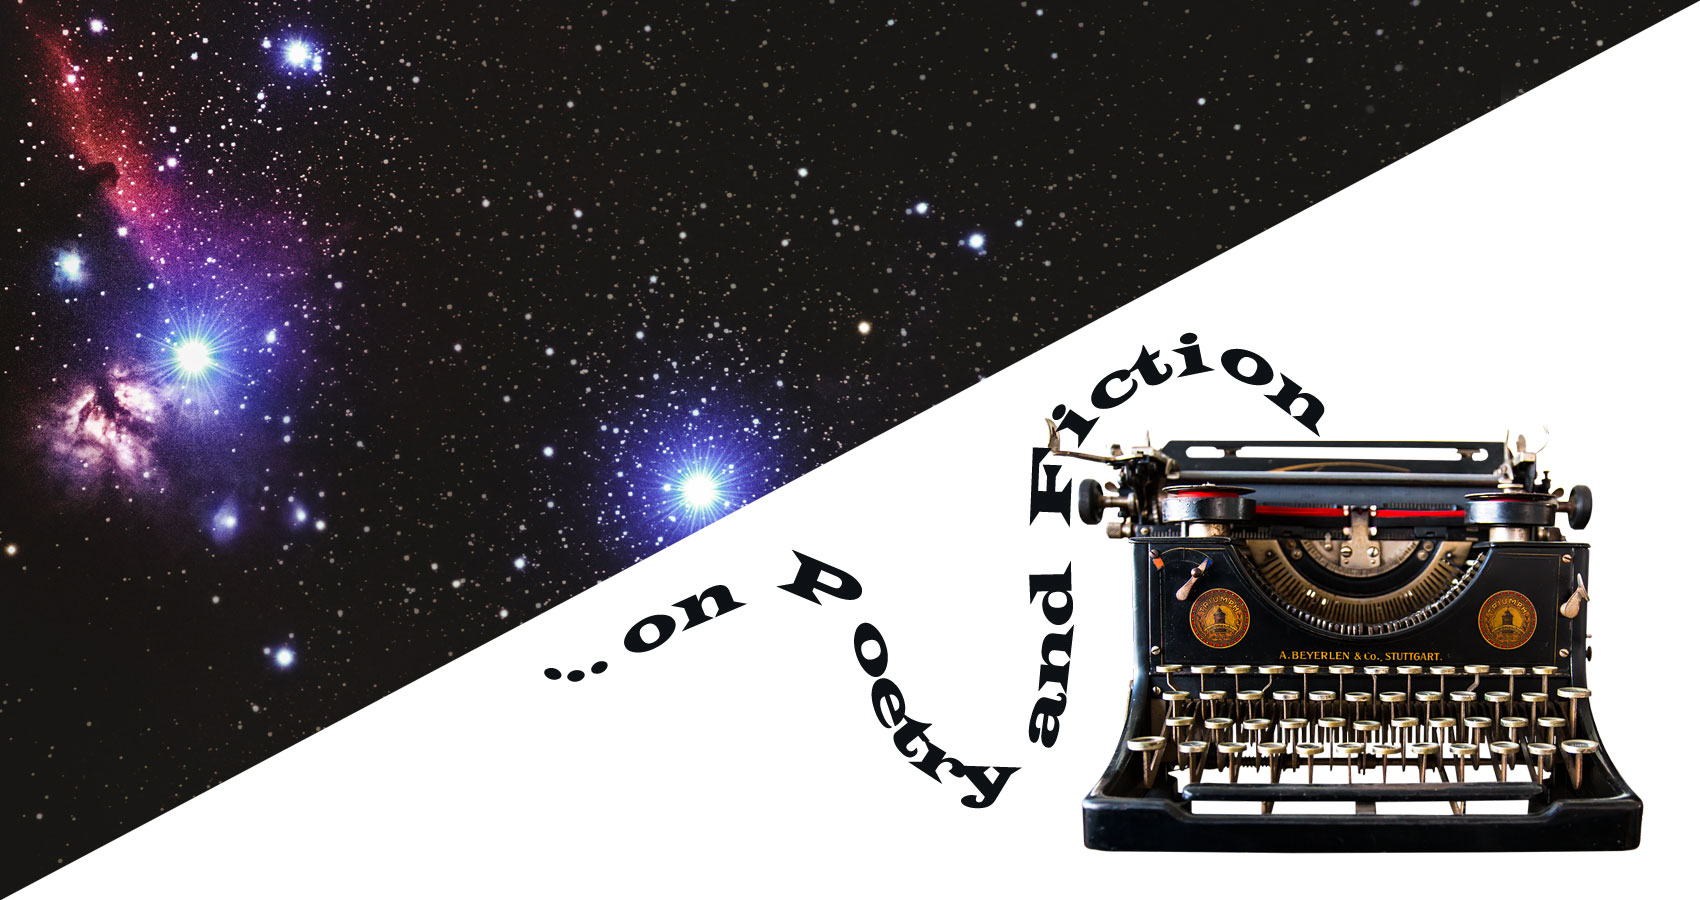 "...on Poetry and Fiction - Just ""One Word"" Away (""STARS""), editorial by Phyllis P. Colucci at Spillwords.com"